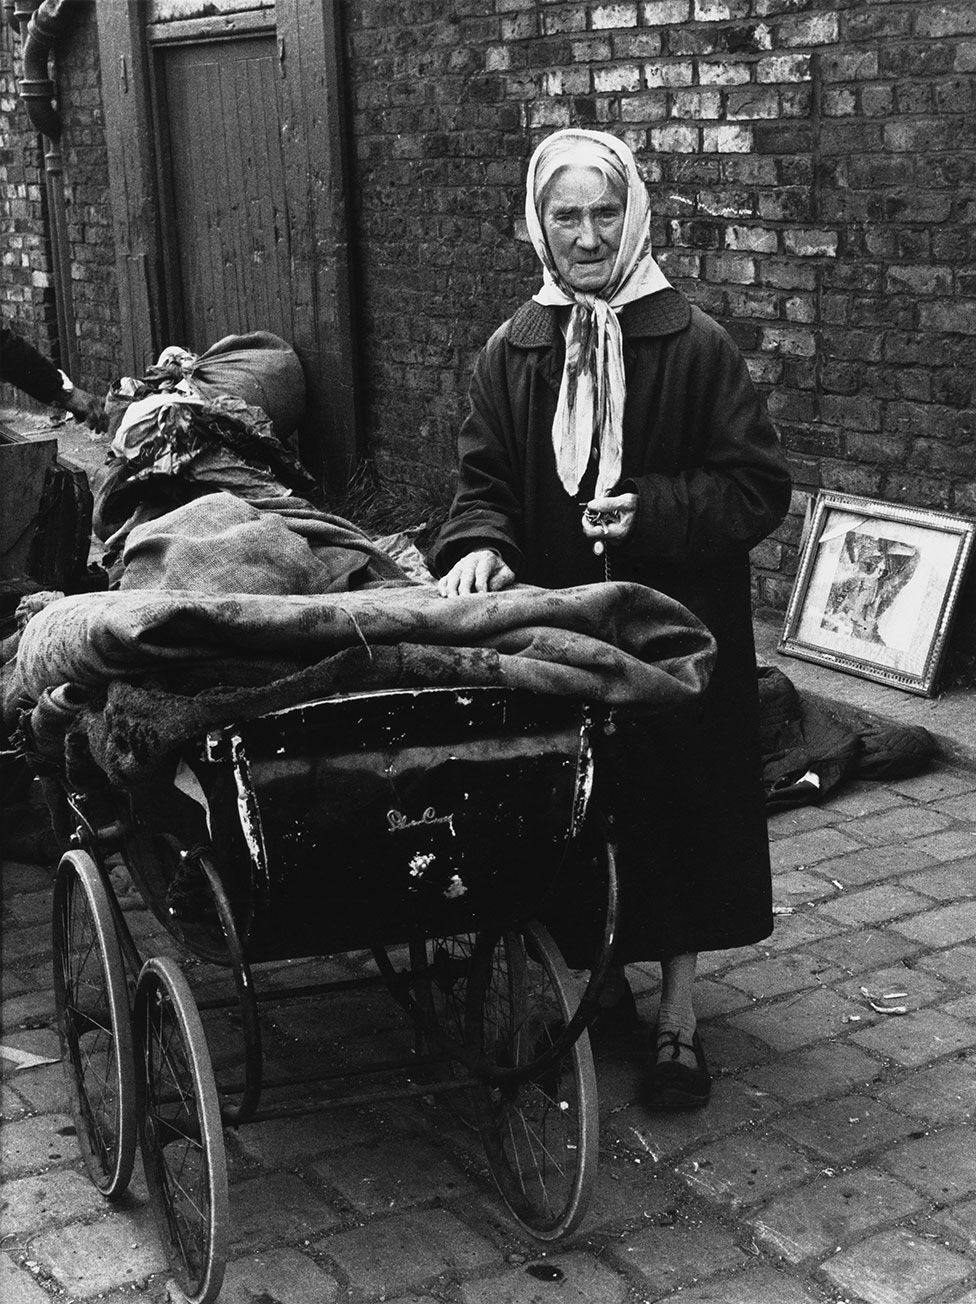 An elderly woman stands next to a pram with bundles of cloth on